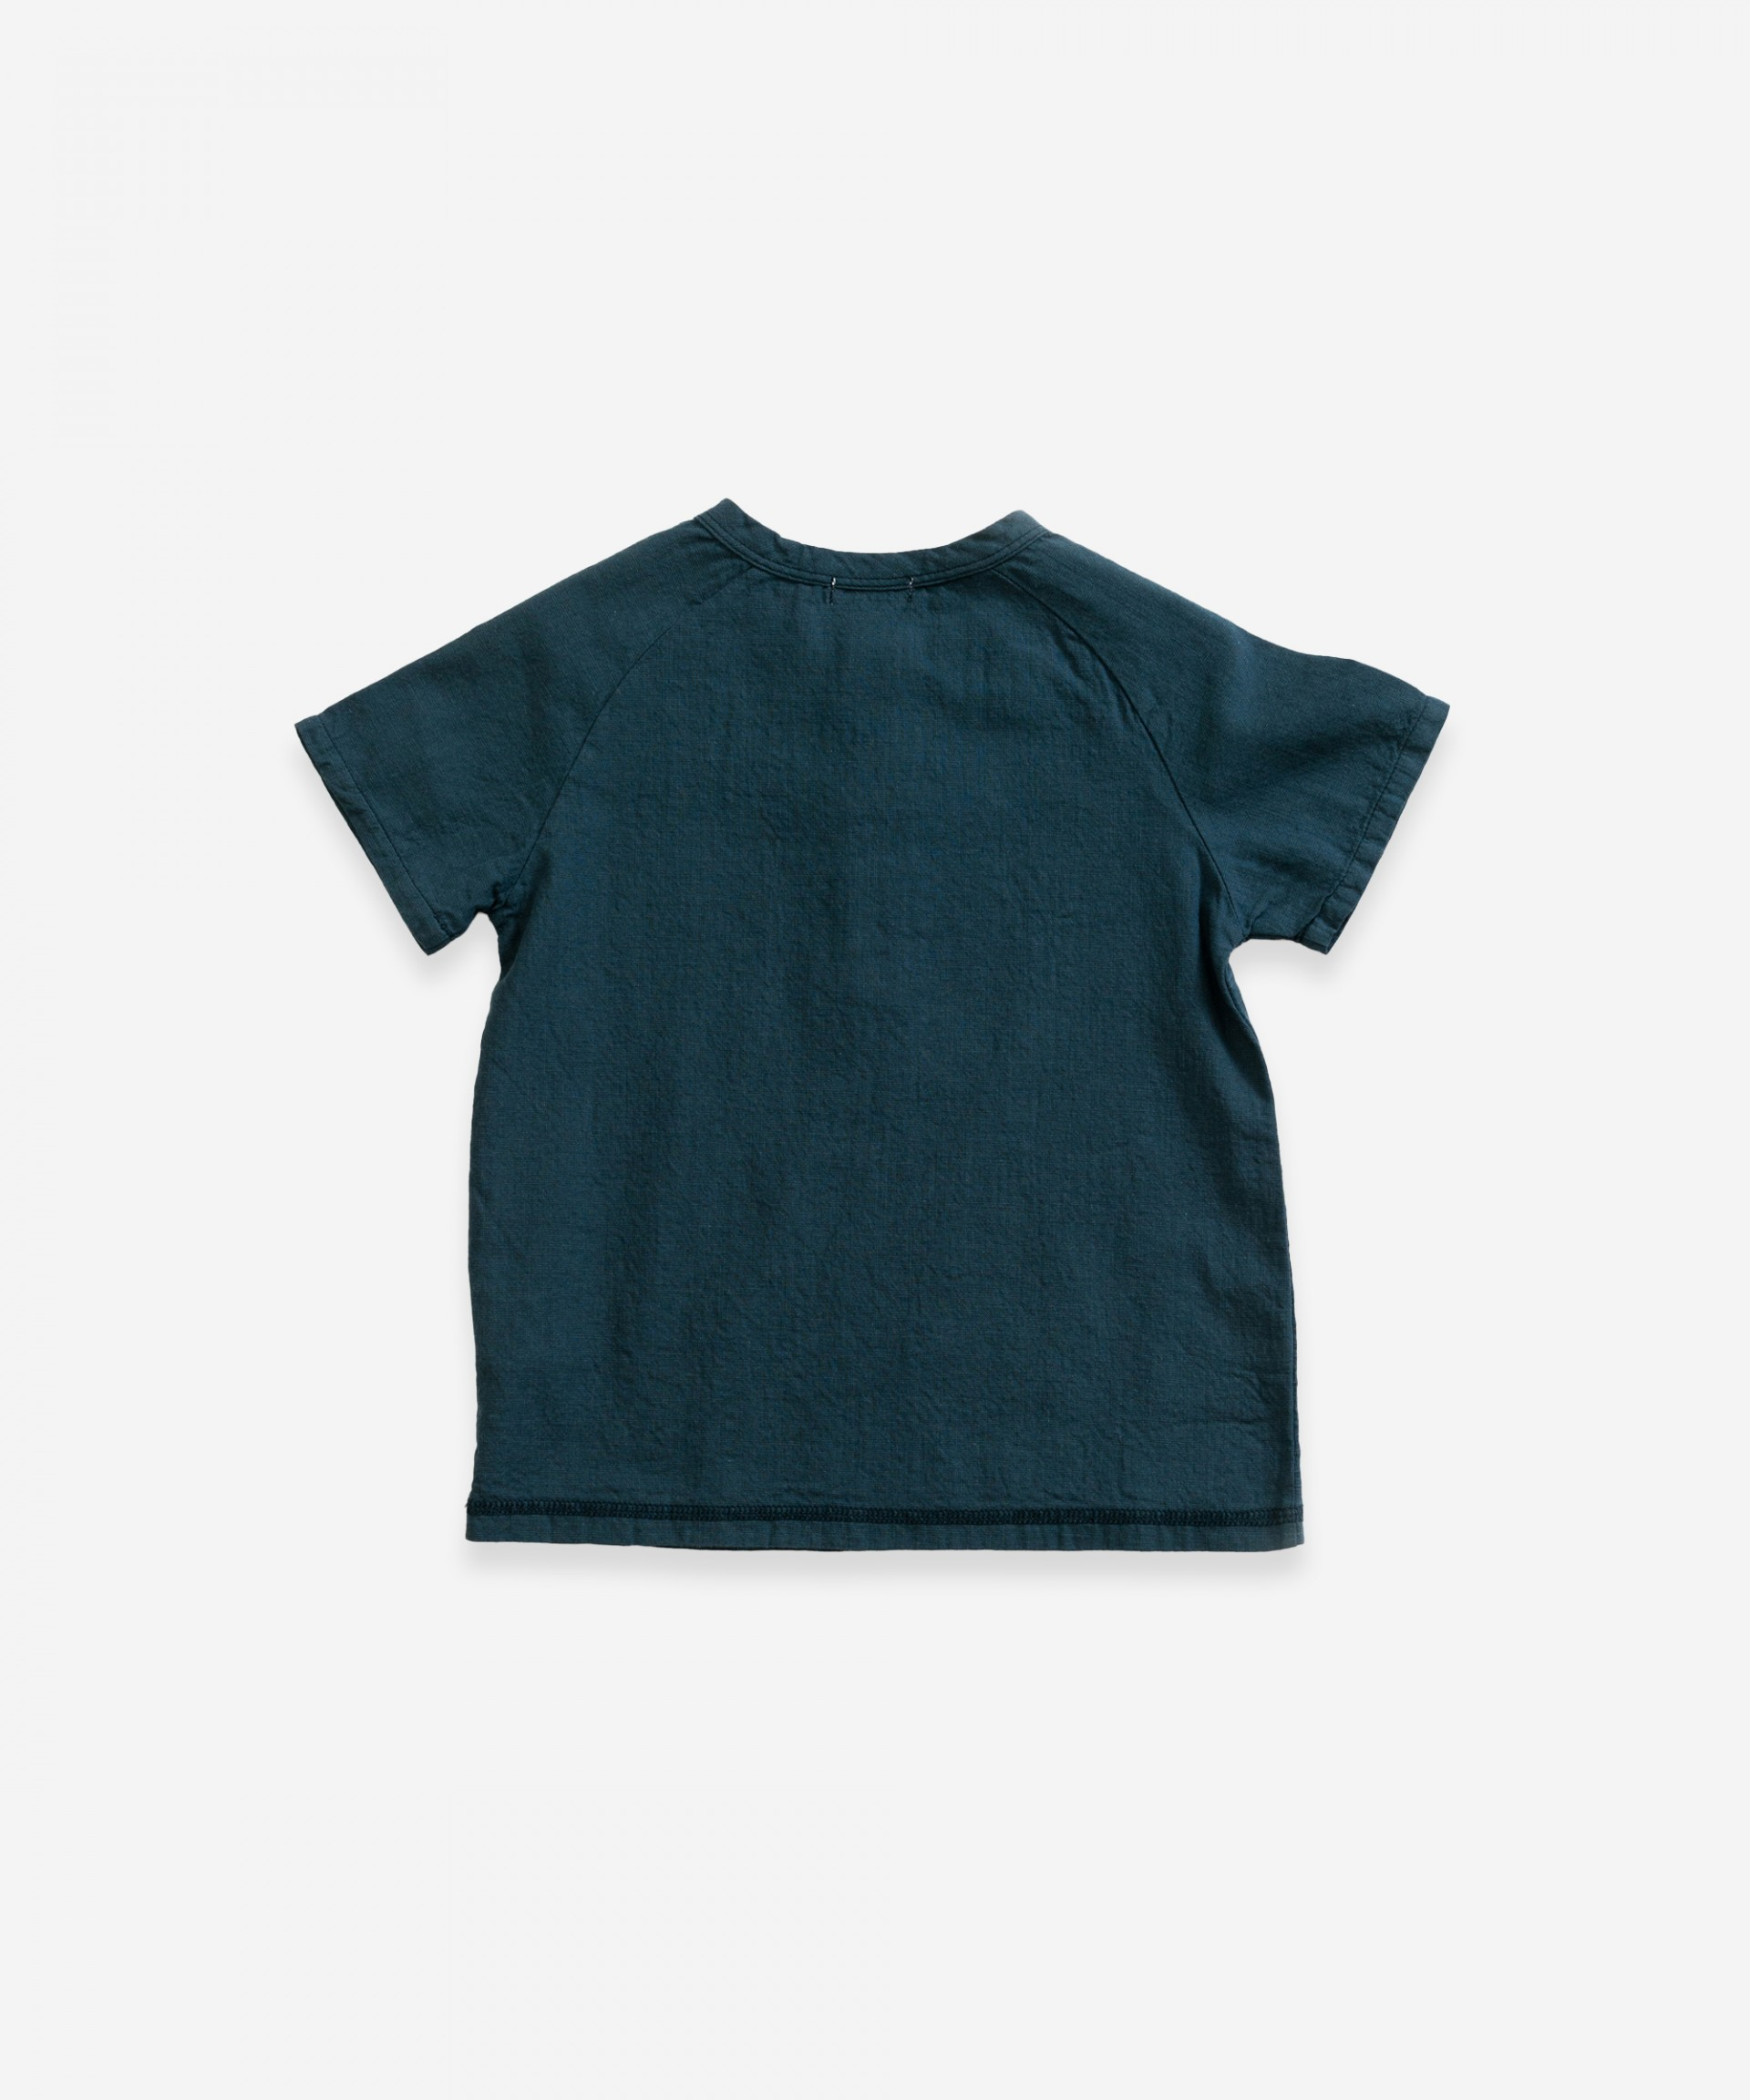 T-shirt in mixed cotton | Weaving